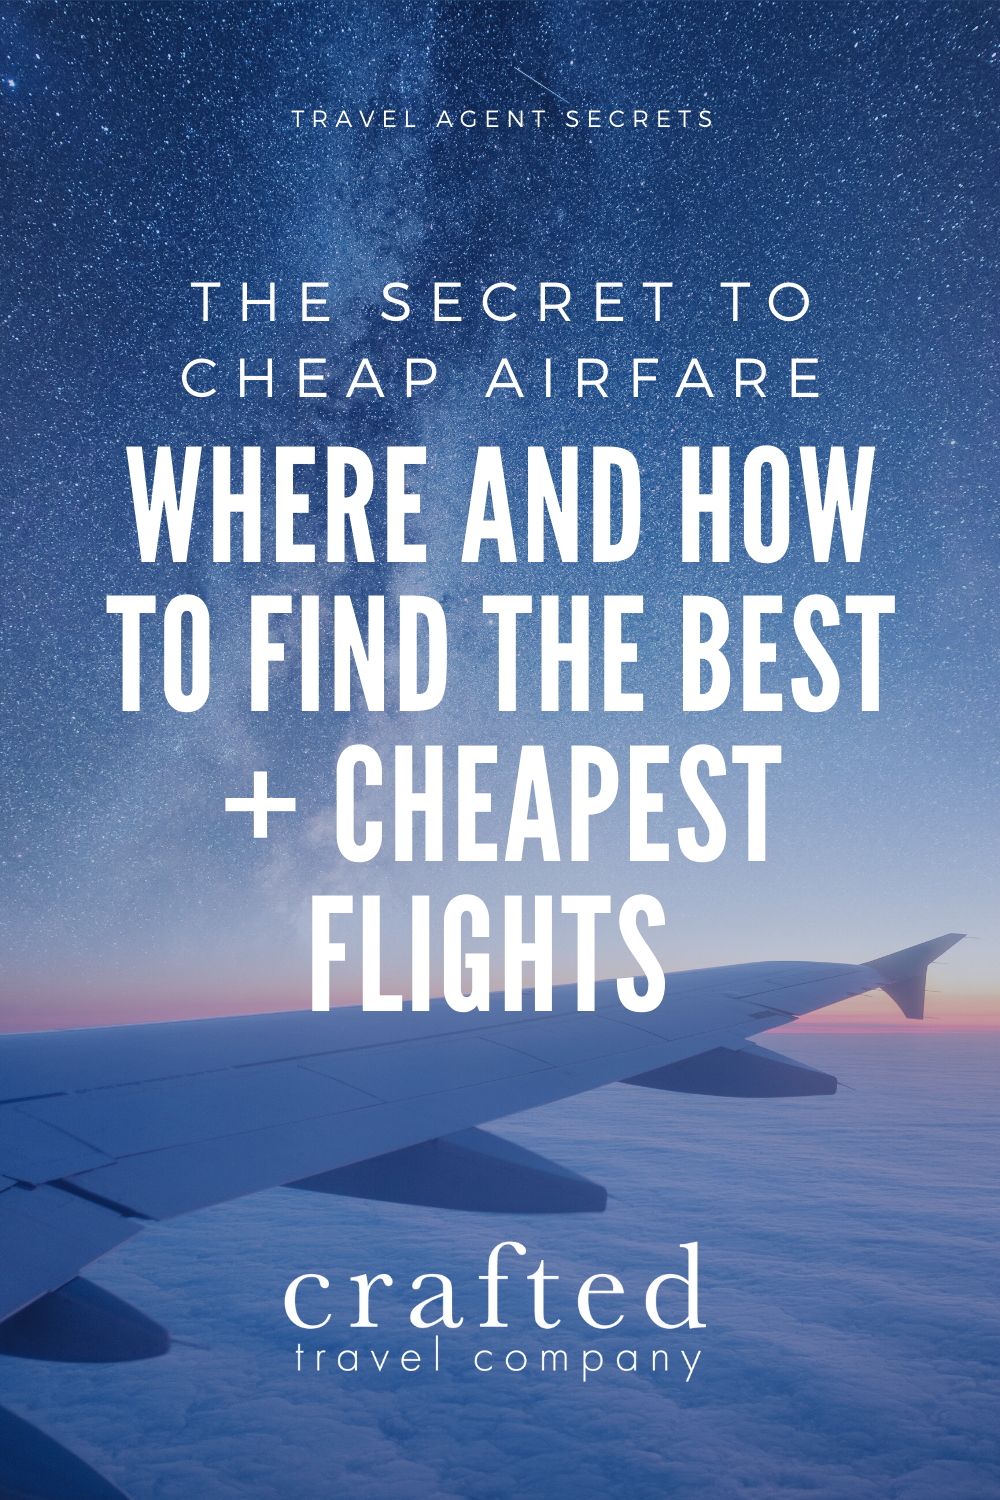 Join our new series covering The Secret to Cheap Airfare - travel agent secrets for where to go and how to book the best (& cheapest) flights. #travel #cheaptravel #cheaptraveltips #budgettravel #travelonabudget @craftedtravelco